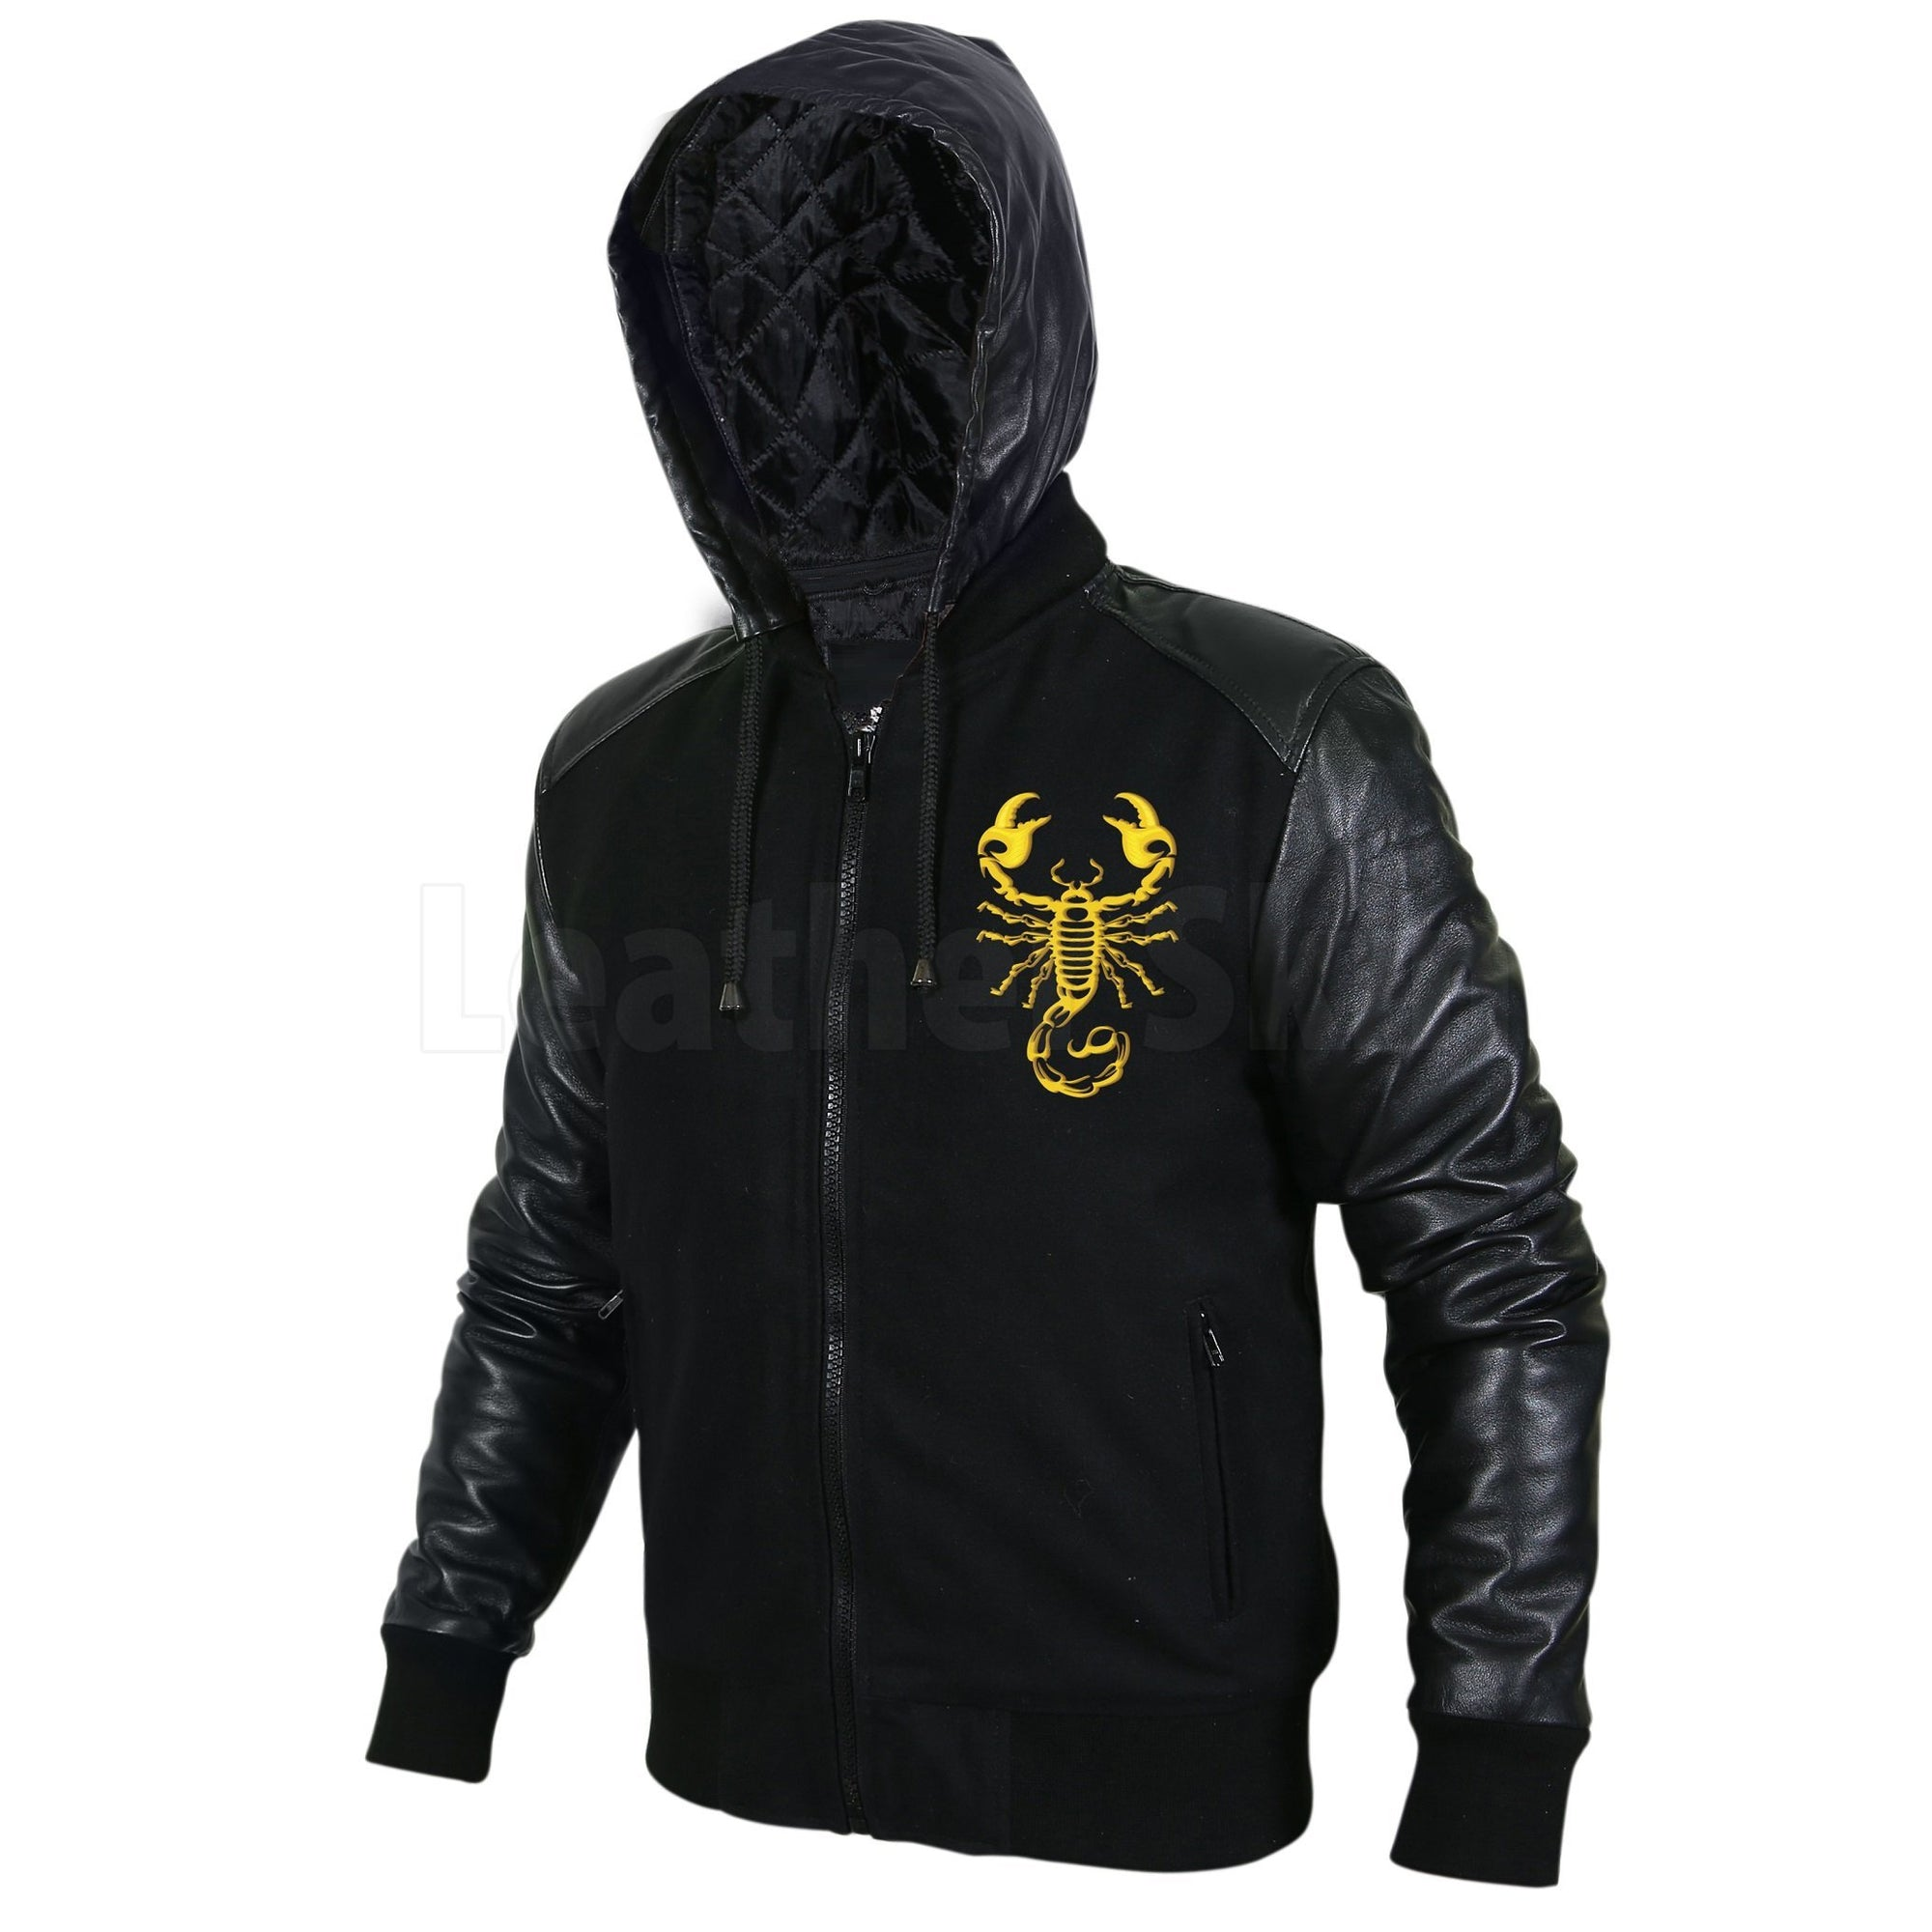 Scorpion Black Hooded Jacket with Leather Sleeves